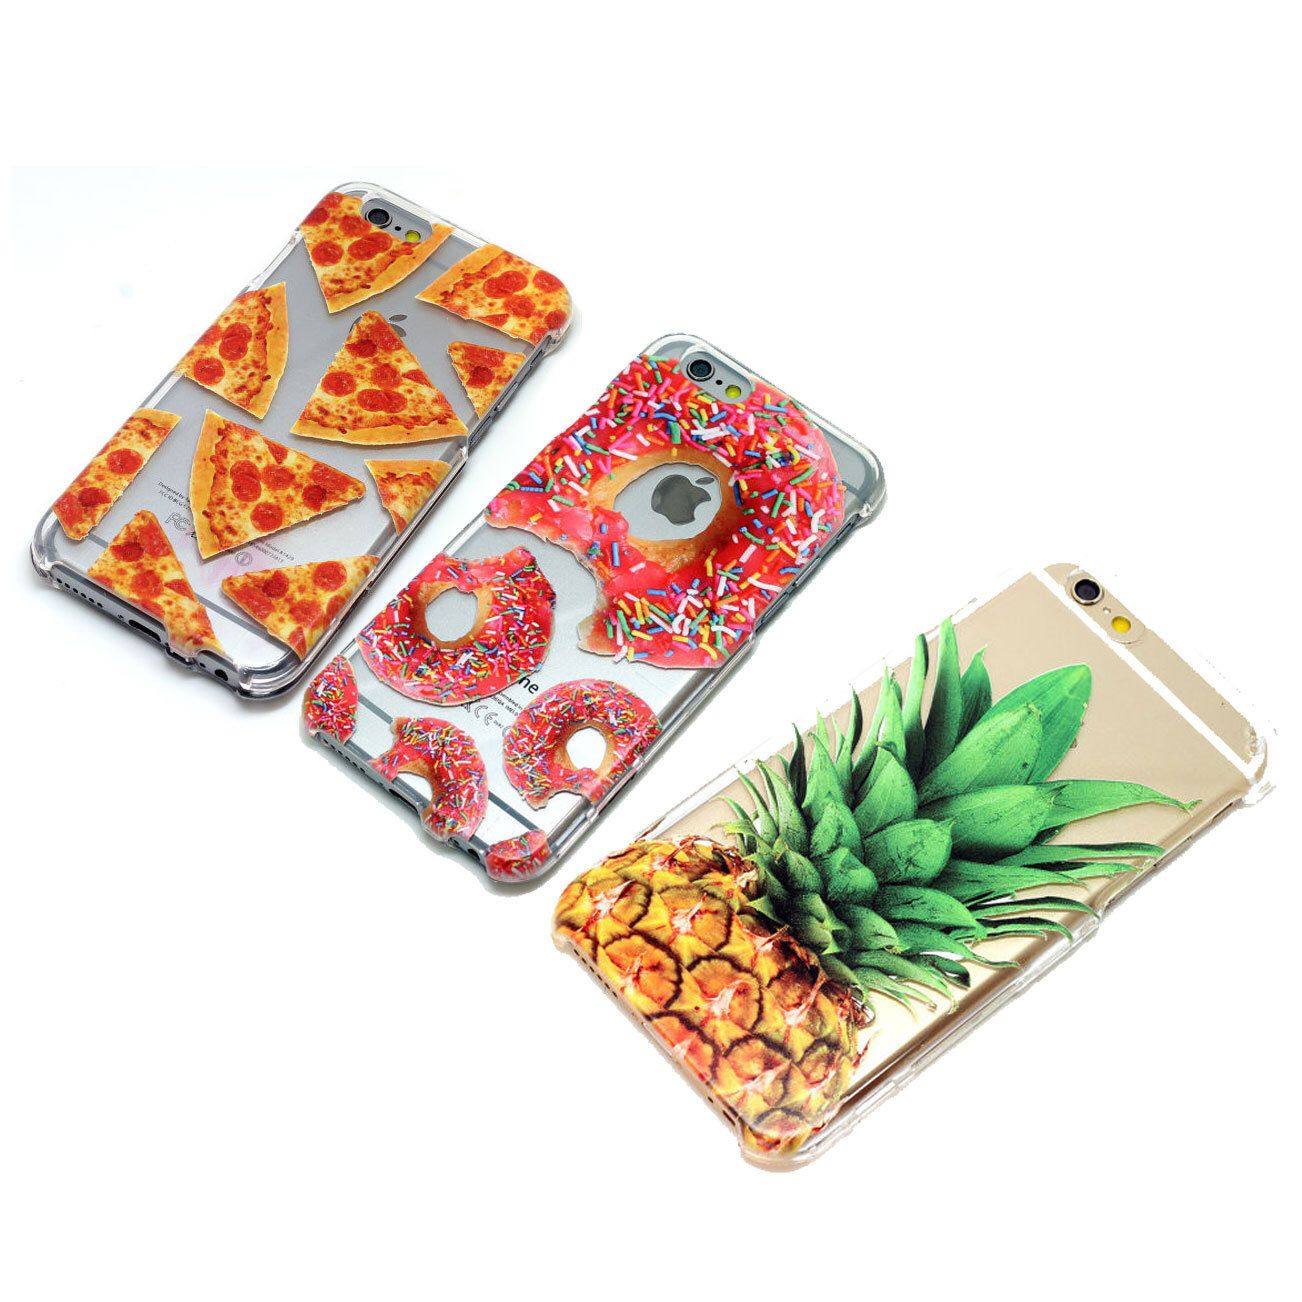 iPhone 5 5s 5c Case Clear - 3 Pack Featuring Pizza Donut Pineapple Cases by ClashCases on Etsy https://www.etsy.com/listing/246318390/iphone-5-5s-5c-case-clear-3-pack